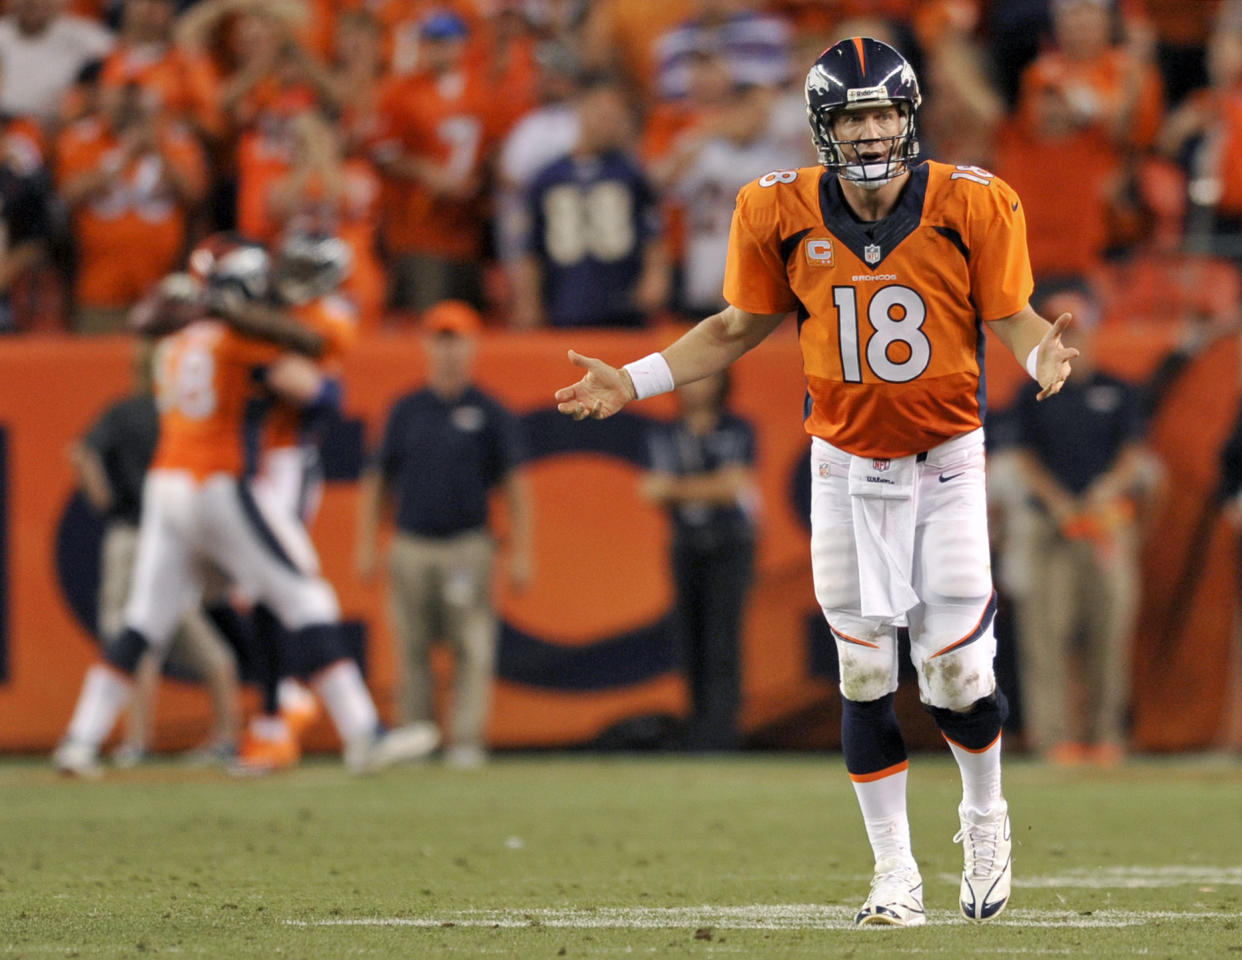 Denver Broncos quarterback Peyton Manning (18) celebrates his seventh touchdown pass of the game against the Baltimore Ravens during the second half of an NFL football game, Thursday, Sept. 5, 2013, in Denver. The Broncos won 49-27. Manning threw a record-tying seven touchdown passes — something no one had done in 44 years. (AP Photo/Jack Dempsey)